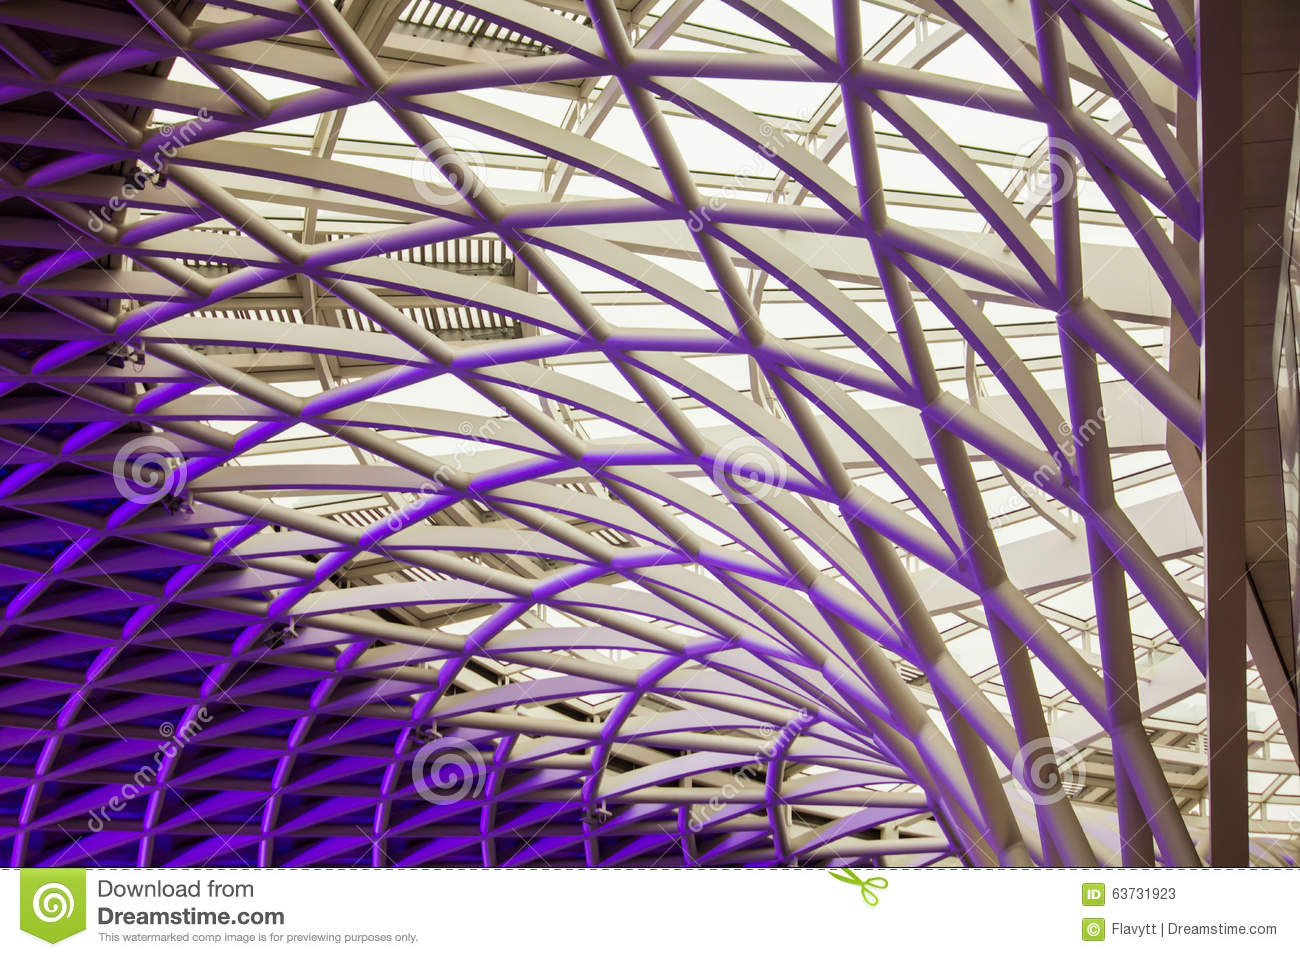 The marvellous Kings Cross ceiling architecture